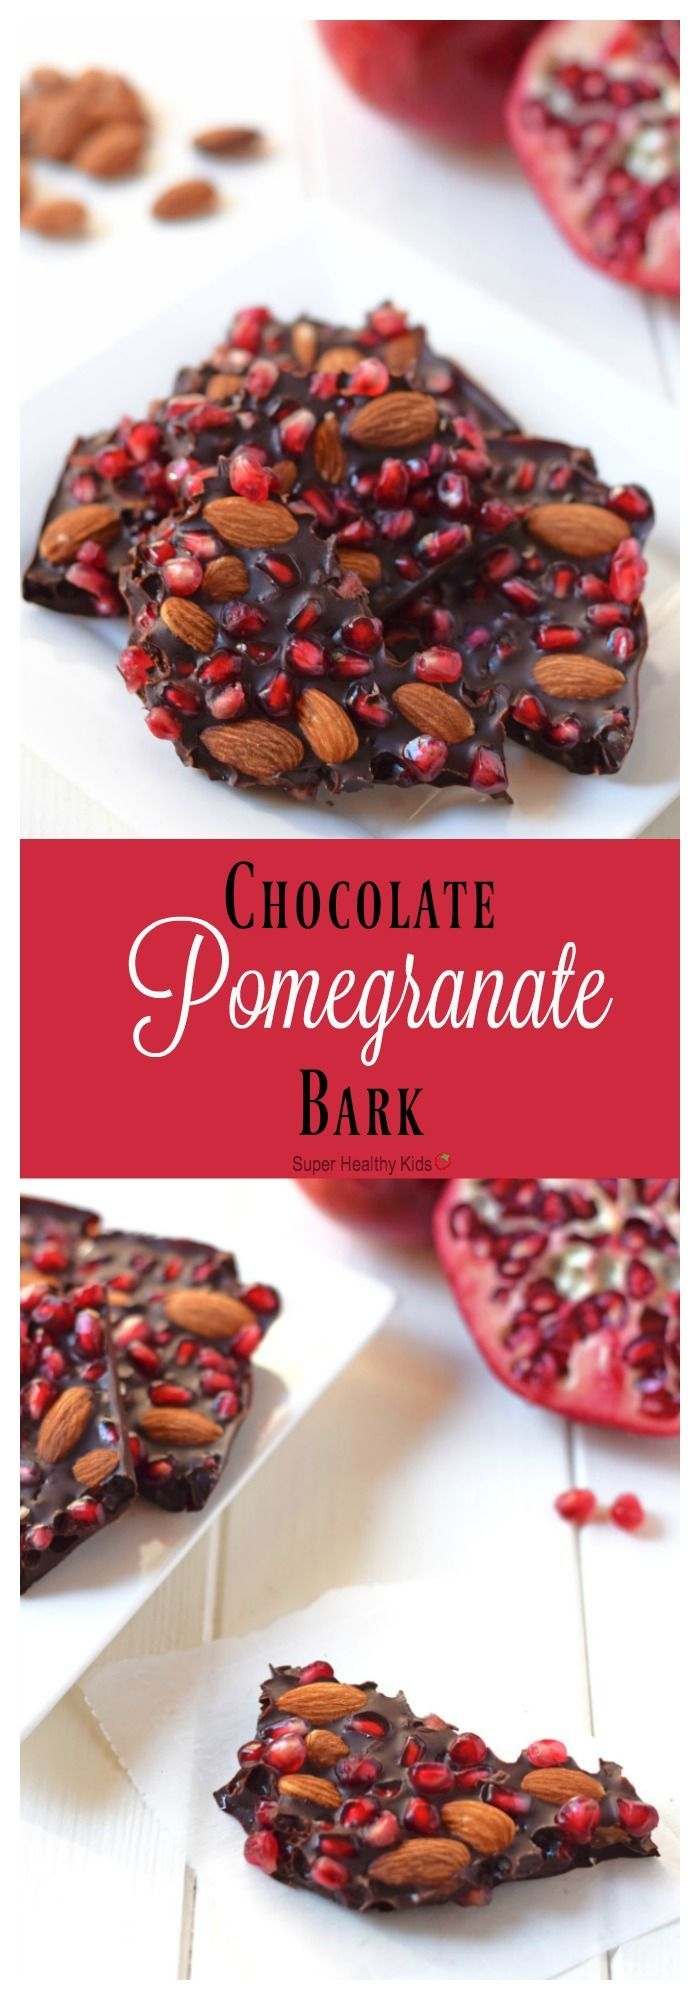 Chocolate Pomegranate Bark with Almonds. Made with just 3 ingredients, this delicious healthy dessert is the perfect way to enjoy pomegranate season! http://www.superhealthykids.com/chocolate-pomegranate-bark/